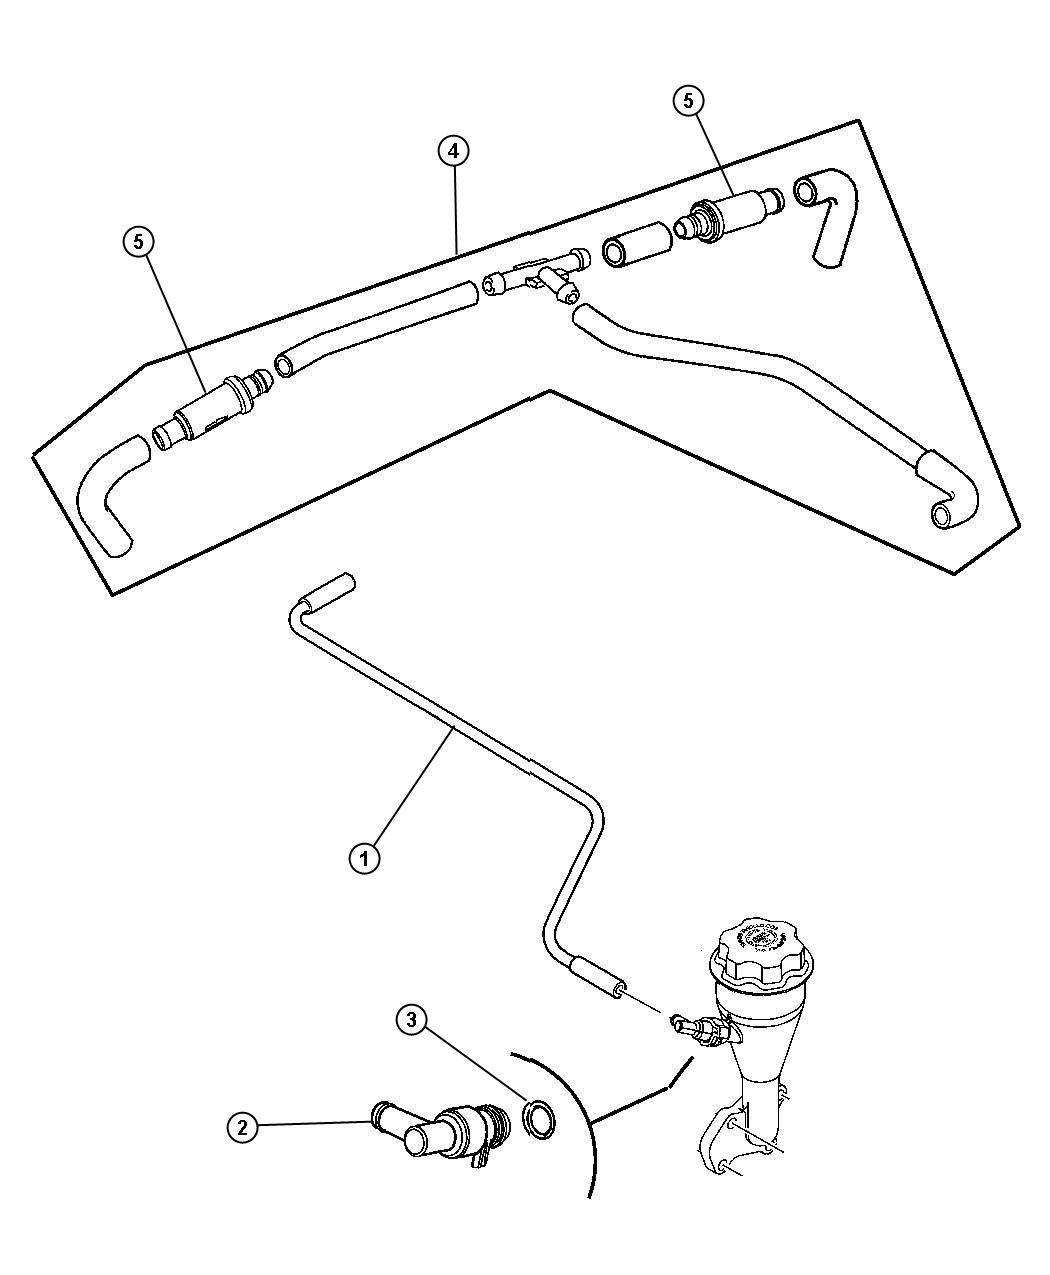 hight resolution of 2008 jeep cj fuse box diagram further serpentine belt diagram 2010 dodge grand 3 8